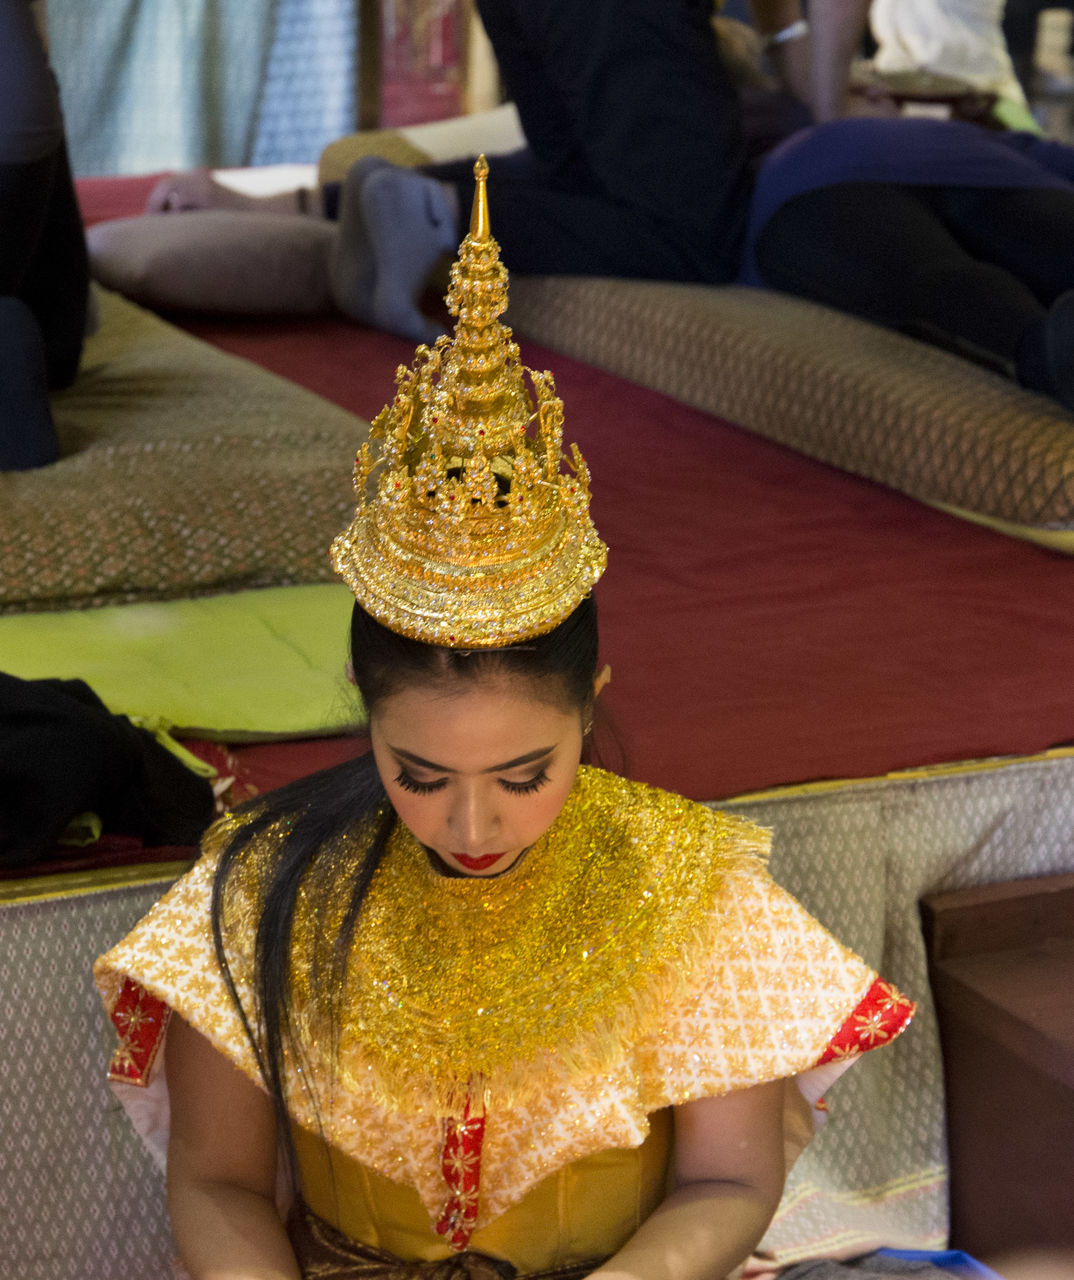 real people, one person, front view, young adult, indoors, lifestyles, traditional clothing, young women, focus on foreground, religion, celebration, spirituality, leisure activity, gold colored, beautiful woman, day, close-up